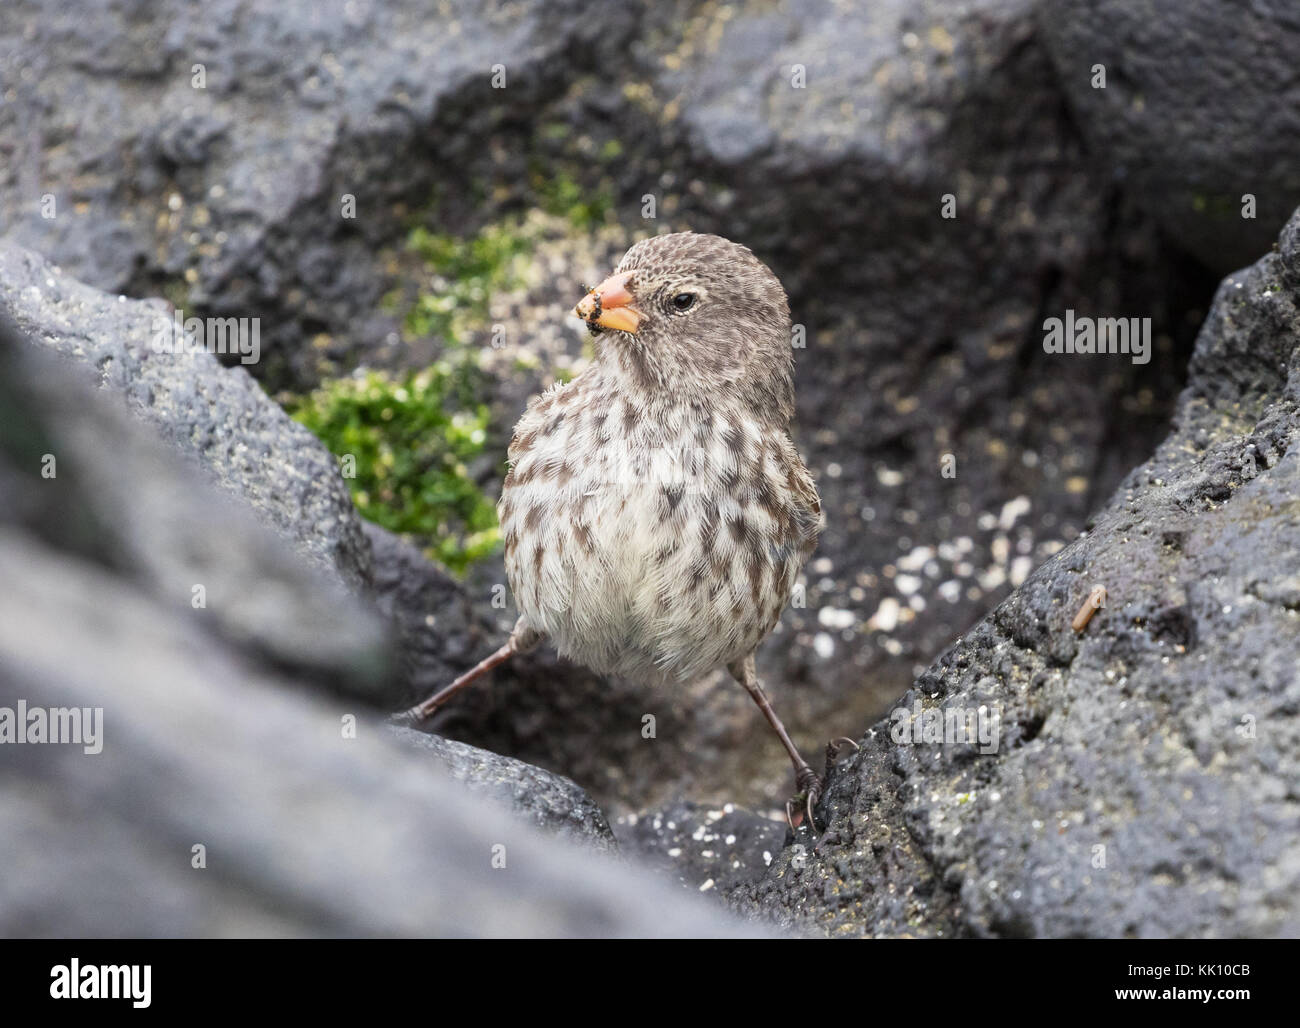 Medium Ground Finch, adult female, ( Geospiza fortis ), Espanola Island, Galapagos Islands, Ecuador South America - Stock Image